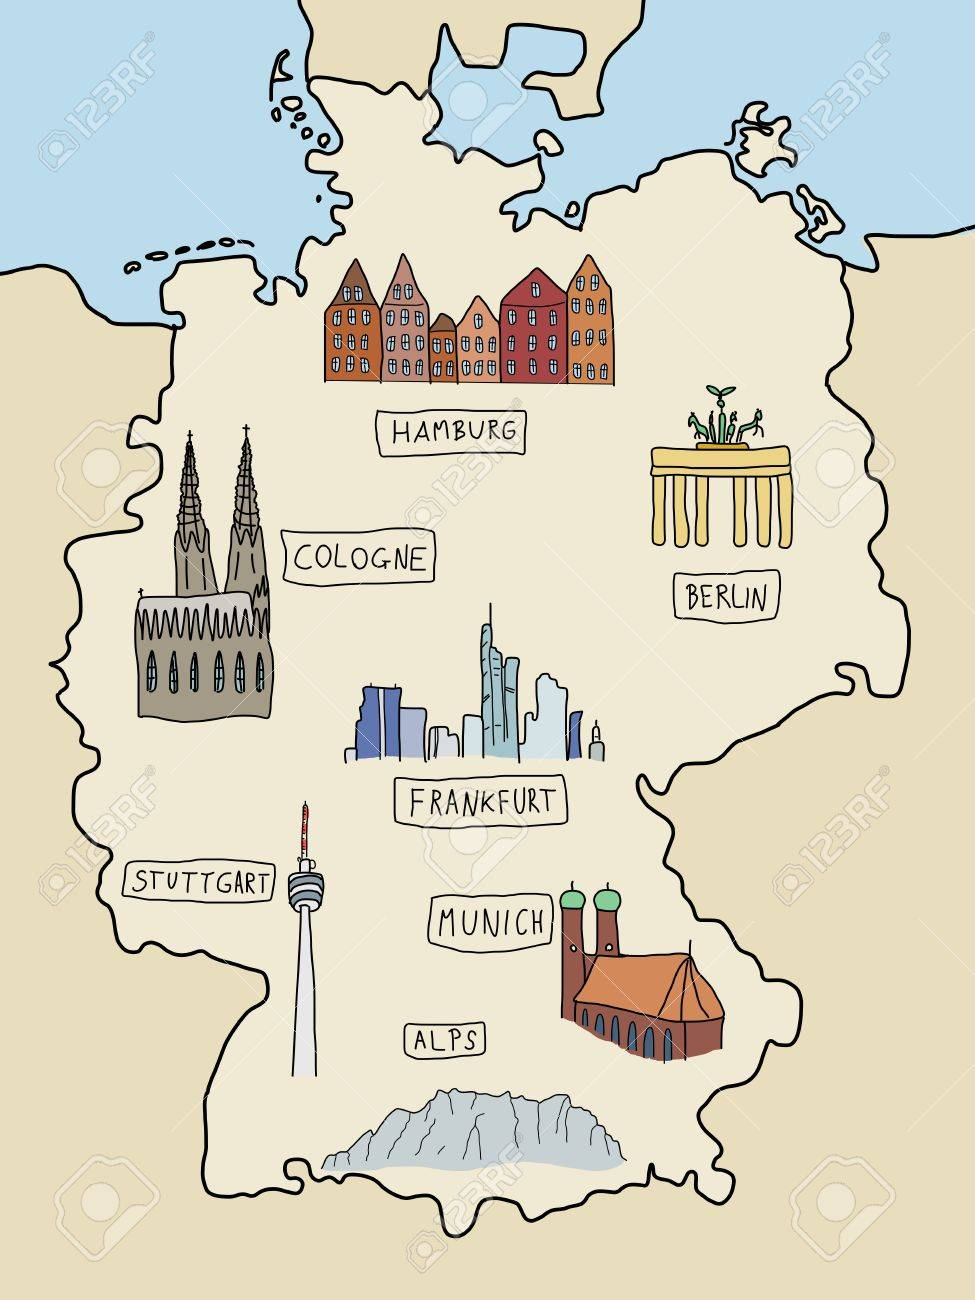 Germany Famous Places On A Doodle Map Berlin Hamburg Cologne